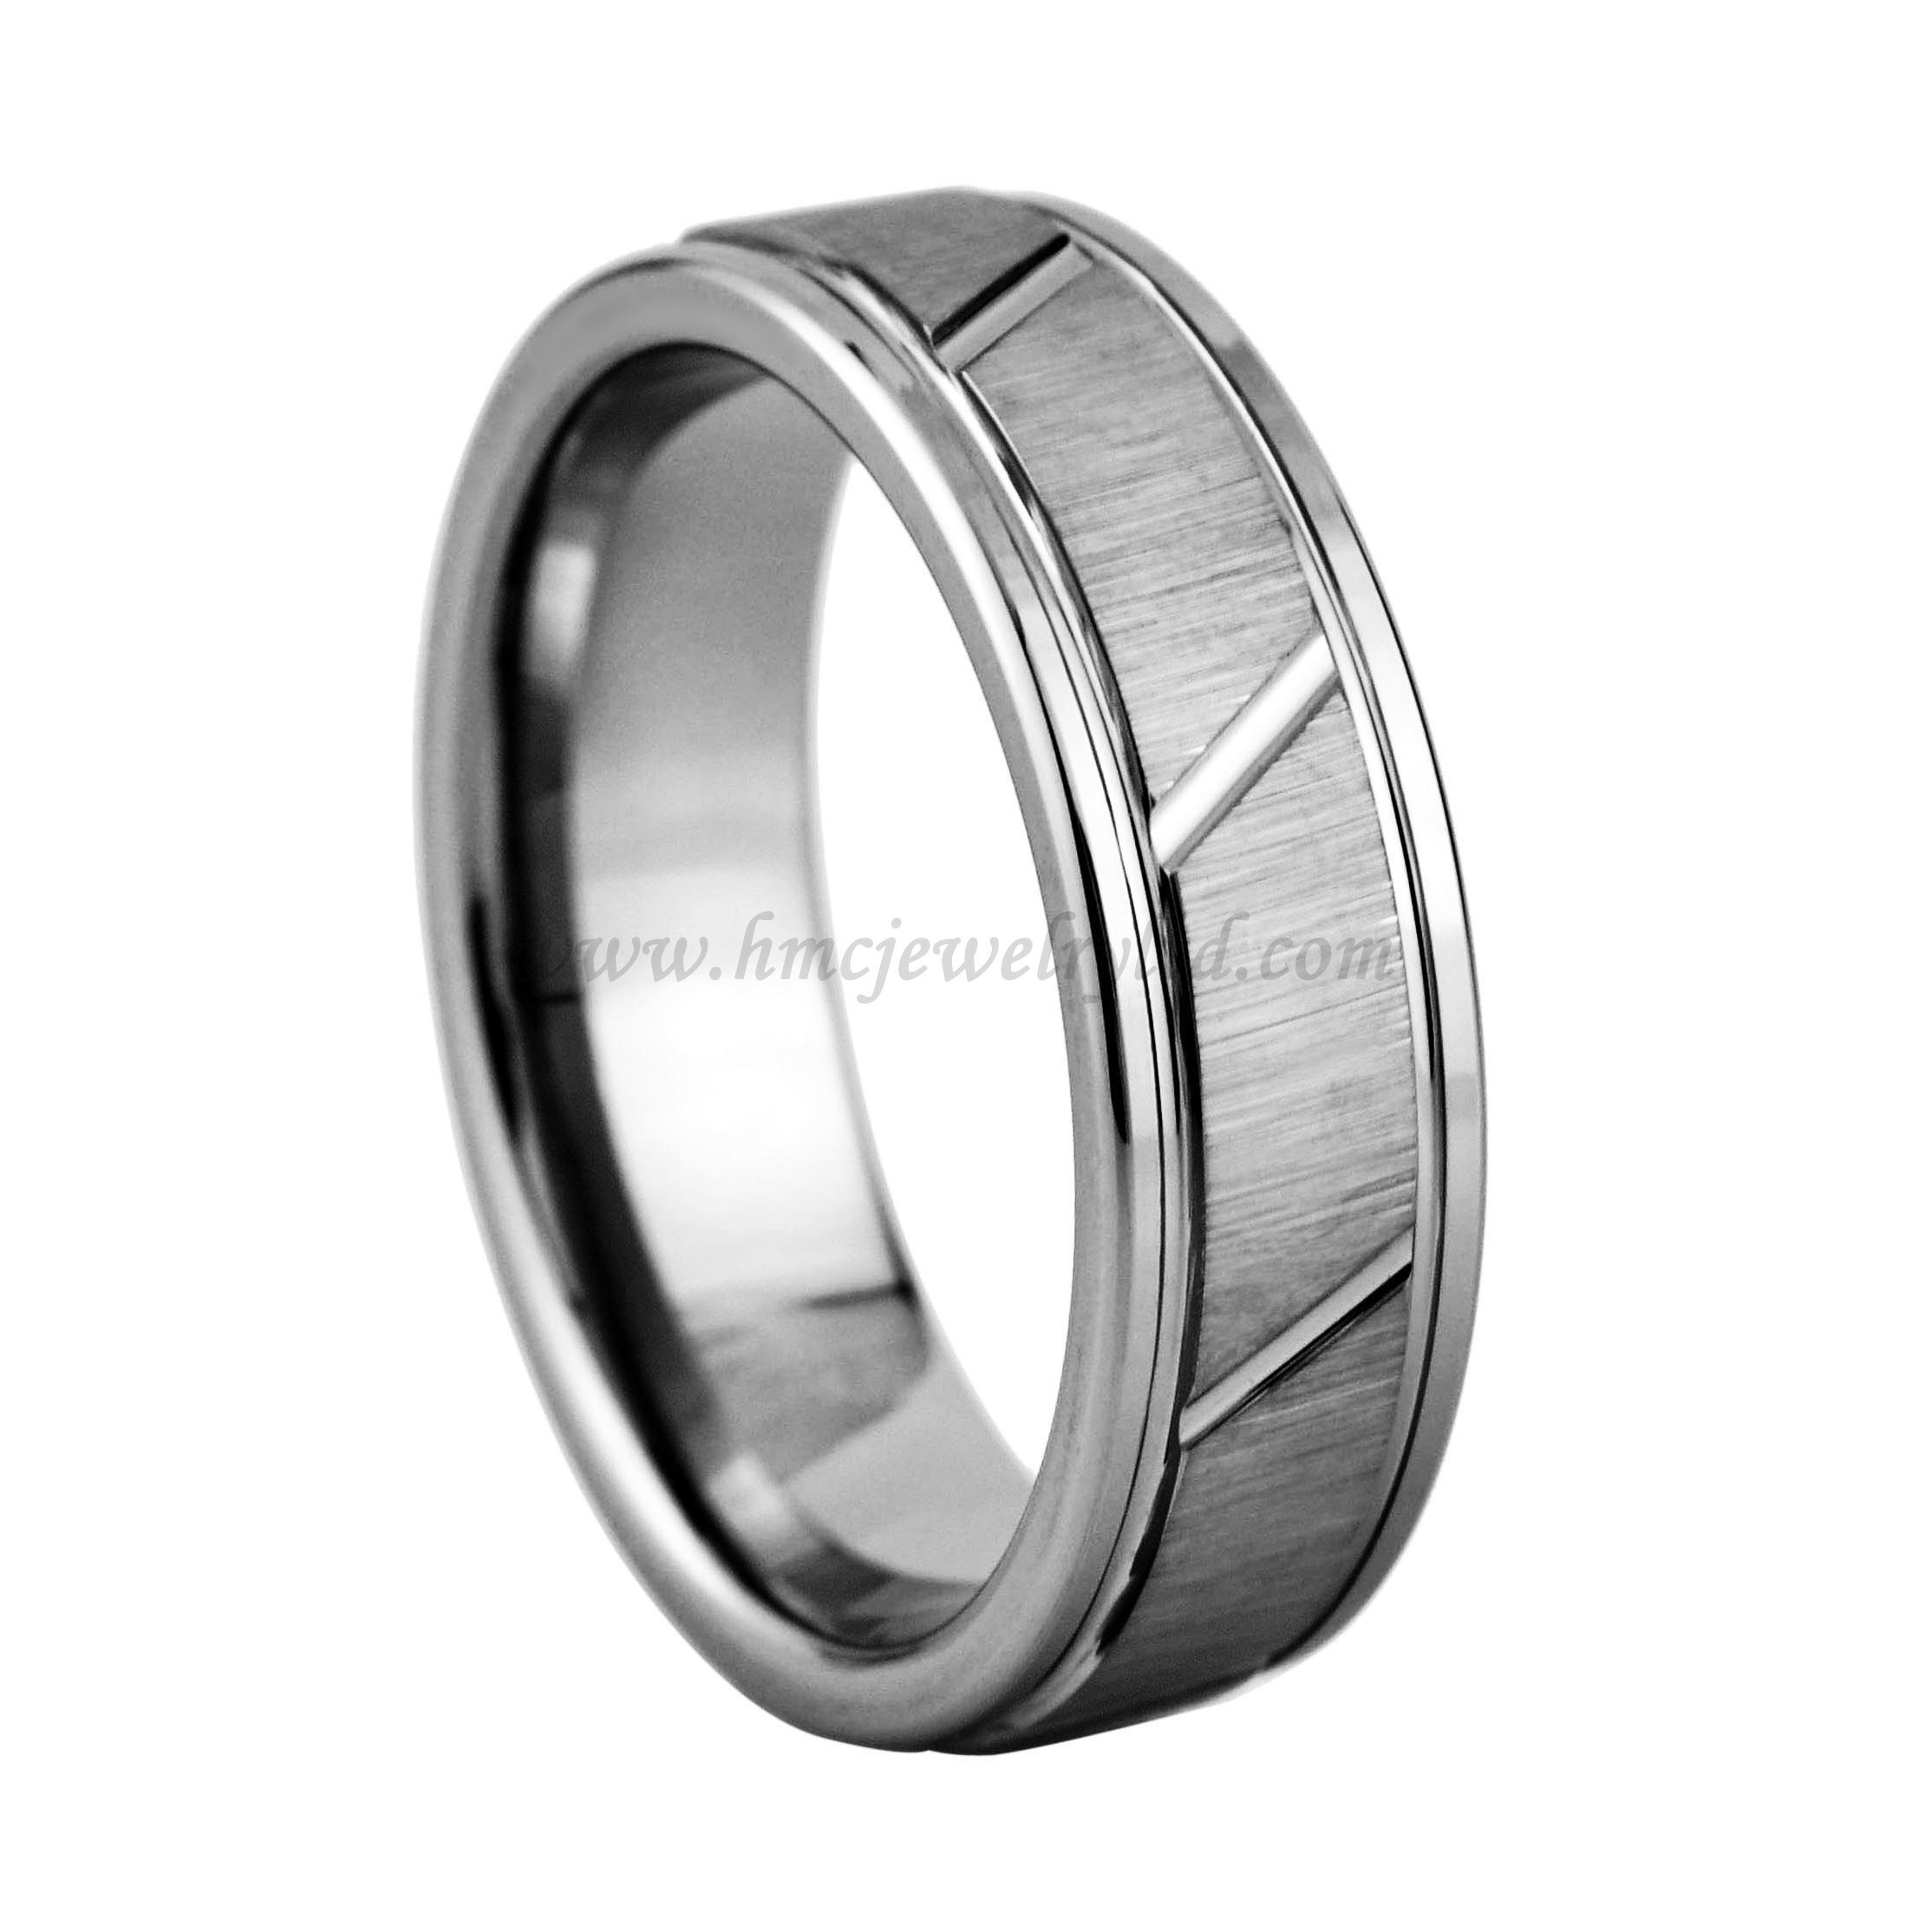 rings eternity white band carbide wedding tungsten and black products sapphire